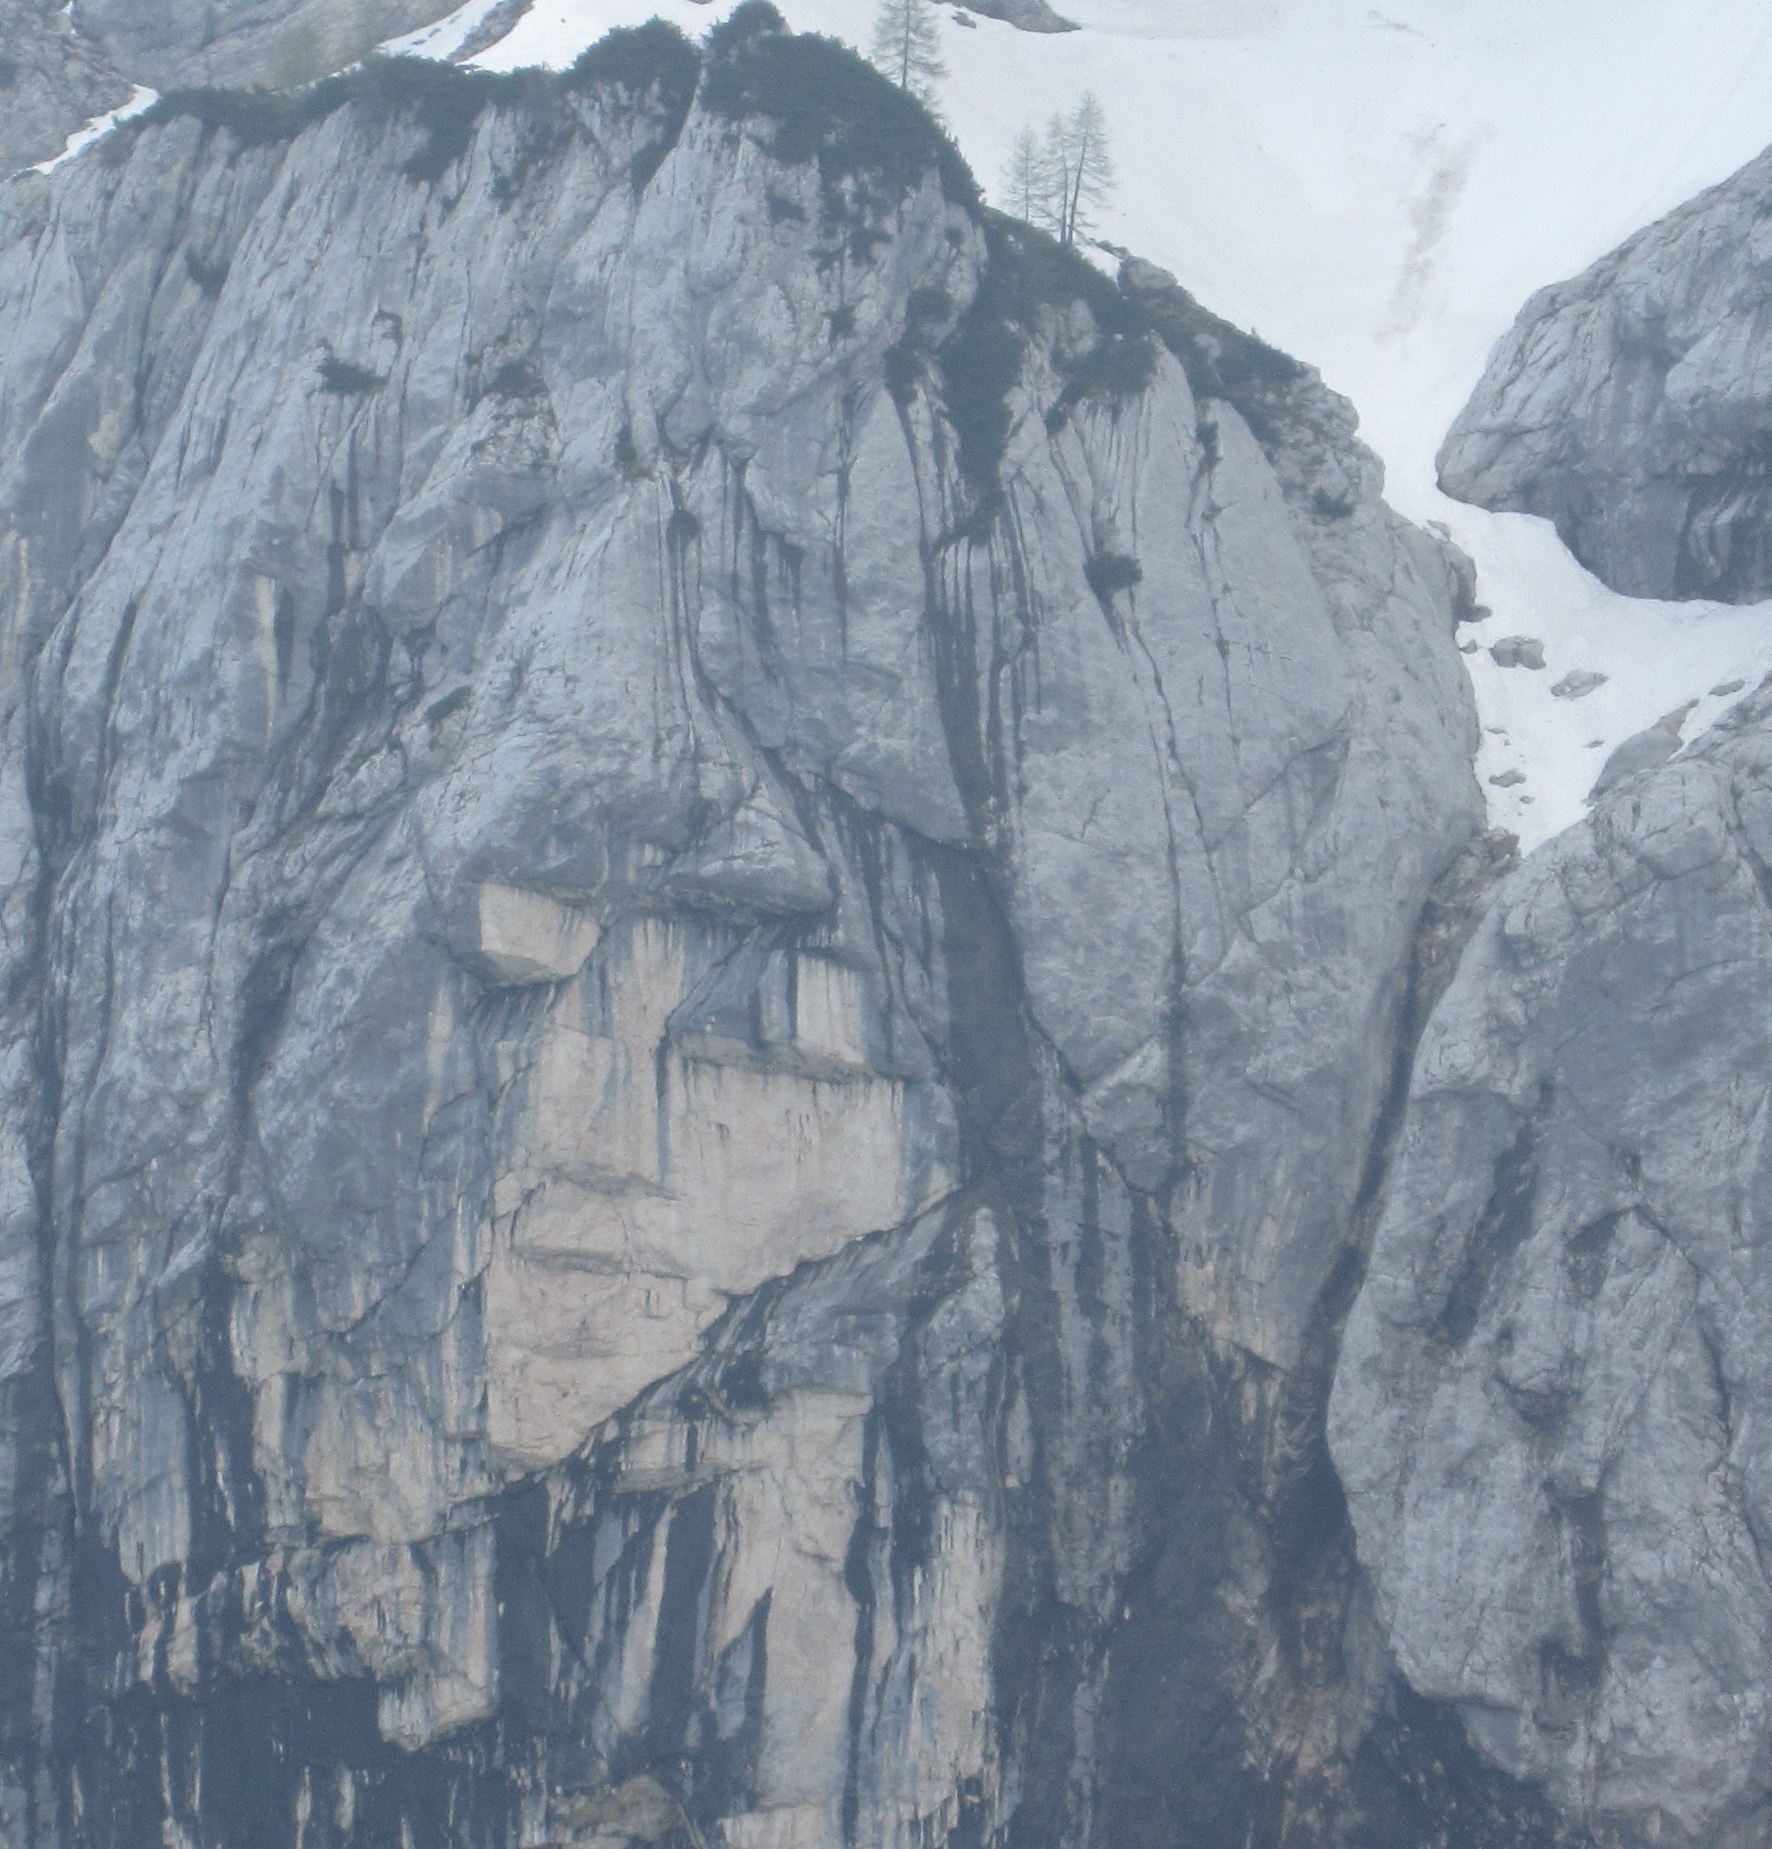 Vrisc pass, Slovenia. Face in rock